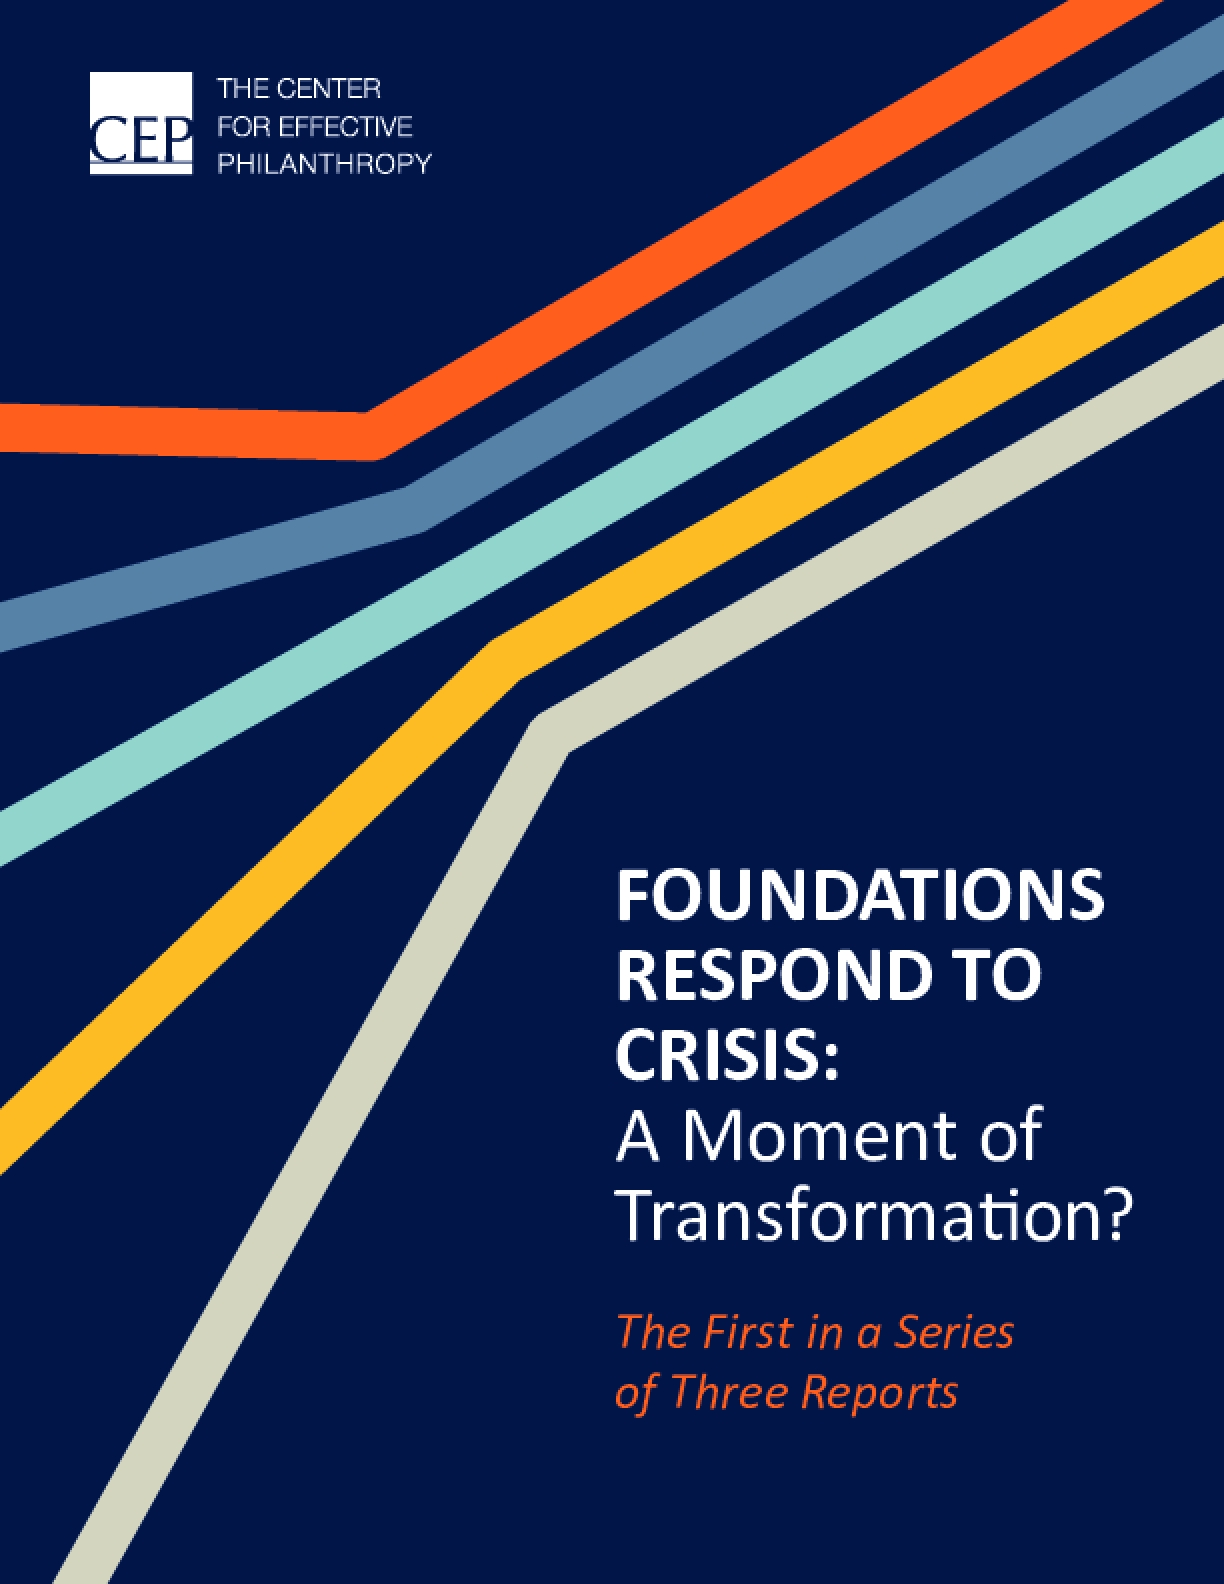 Foundations Respond to Crisis: A Moment of Transformation?